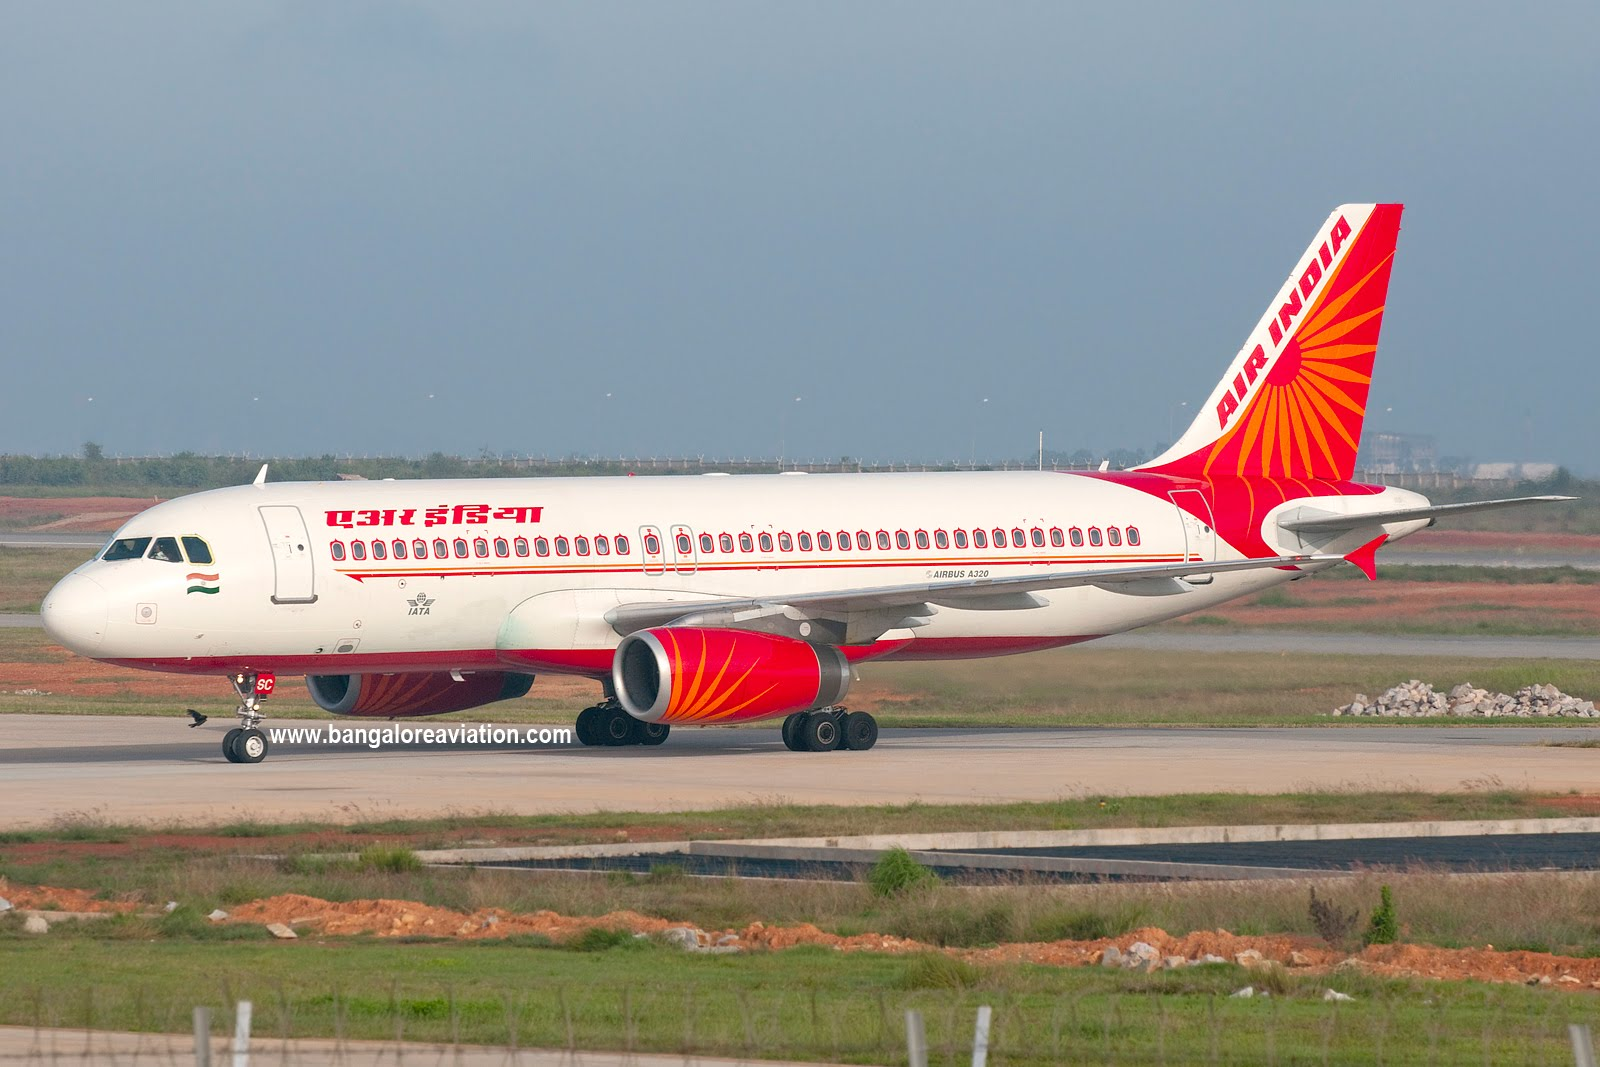 of Indian Airline's early A320 VT ESC in the new Air India livery